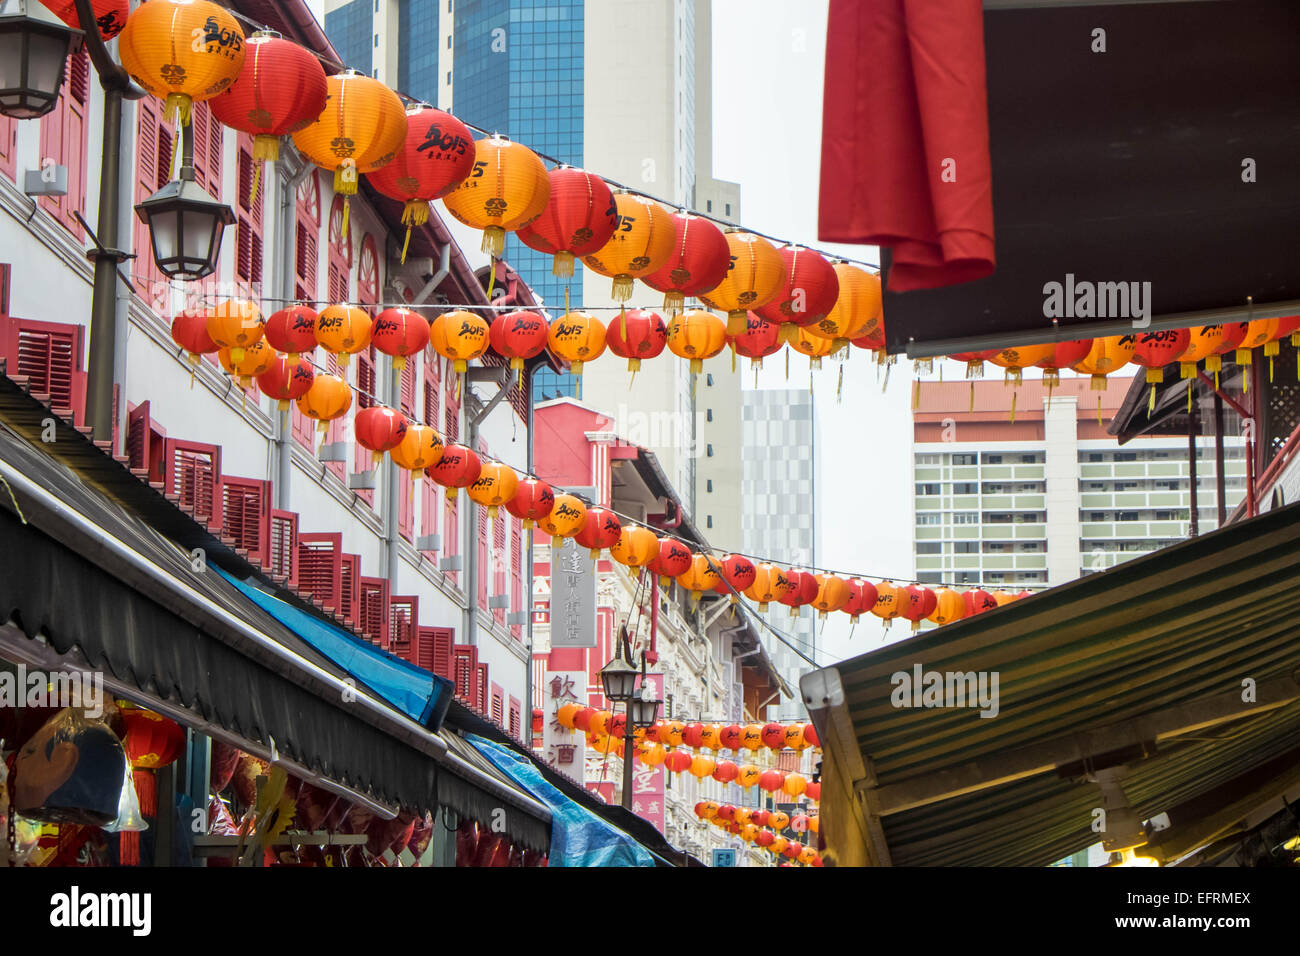 Lanterns hanging in the street to celebrate the year of the goat - Stock Image